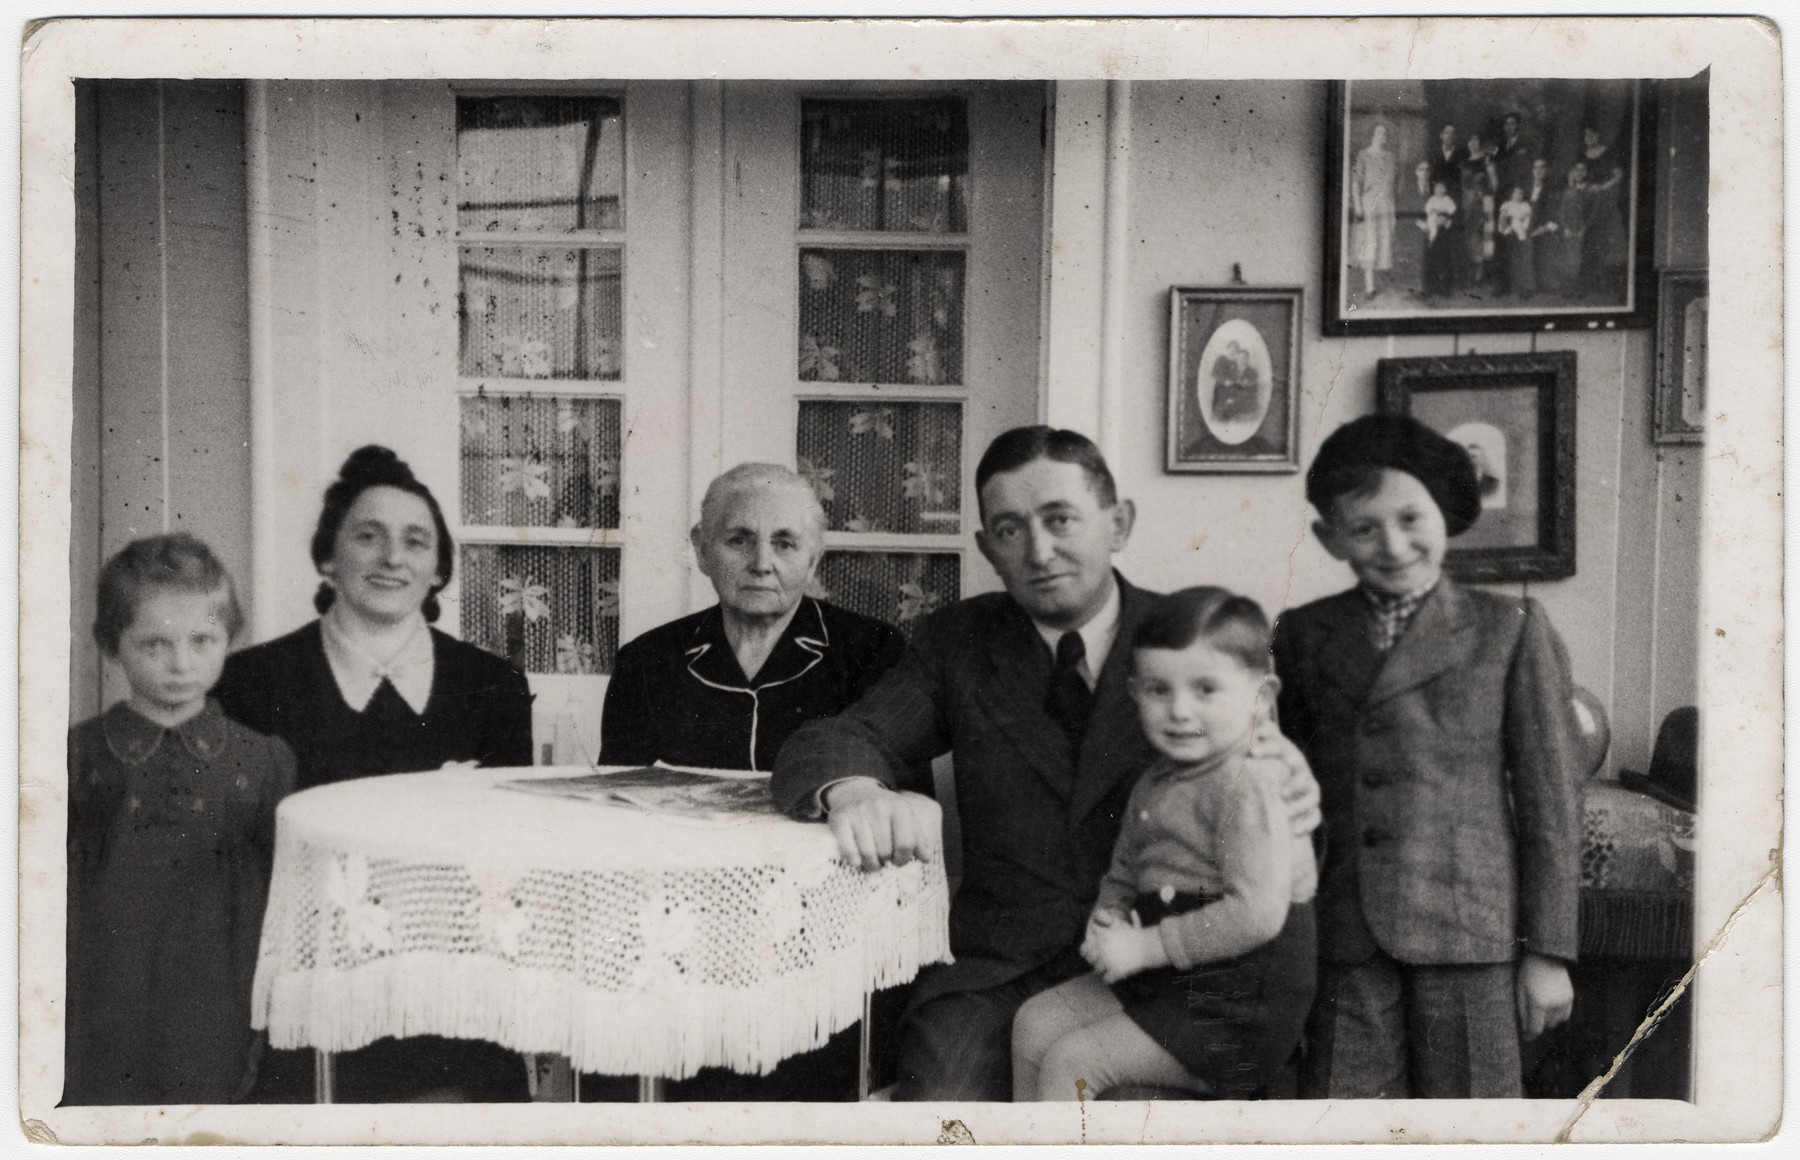 The Brand family sits around a table in their living room.  Pictured from let to right are Agi Brand Etel Brand, Hani Gruenstein, Moshe Brand, Erich Brand and Richard Brand.